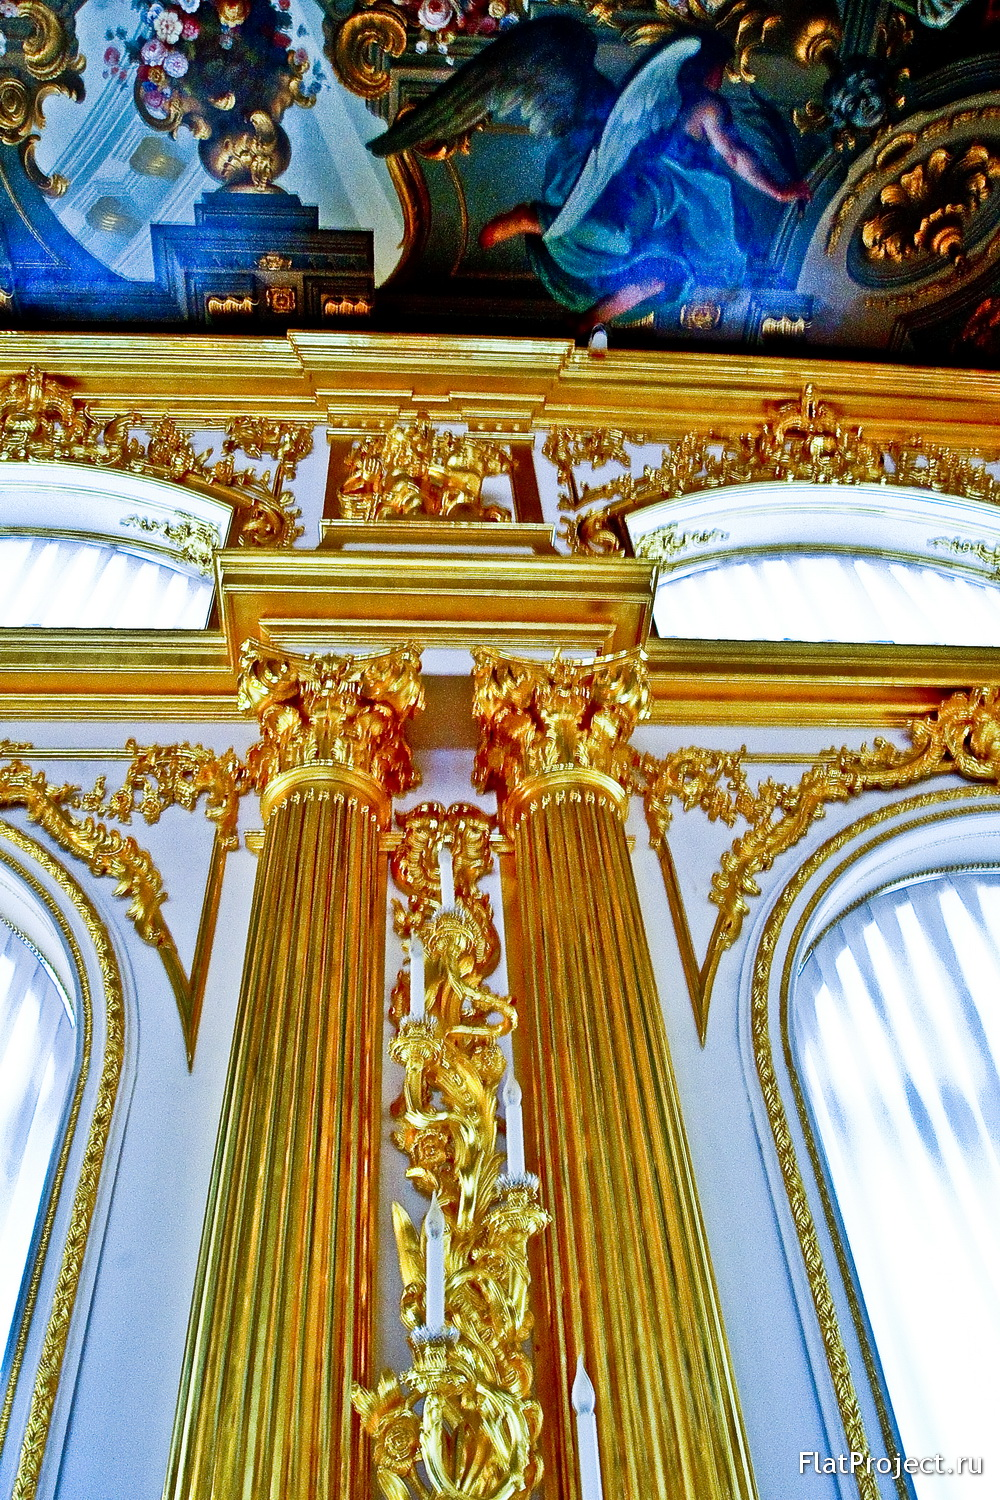 The Catherine Palace interiors – photo 257